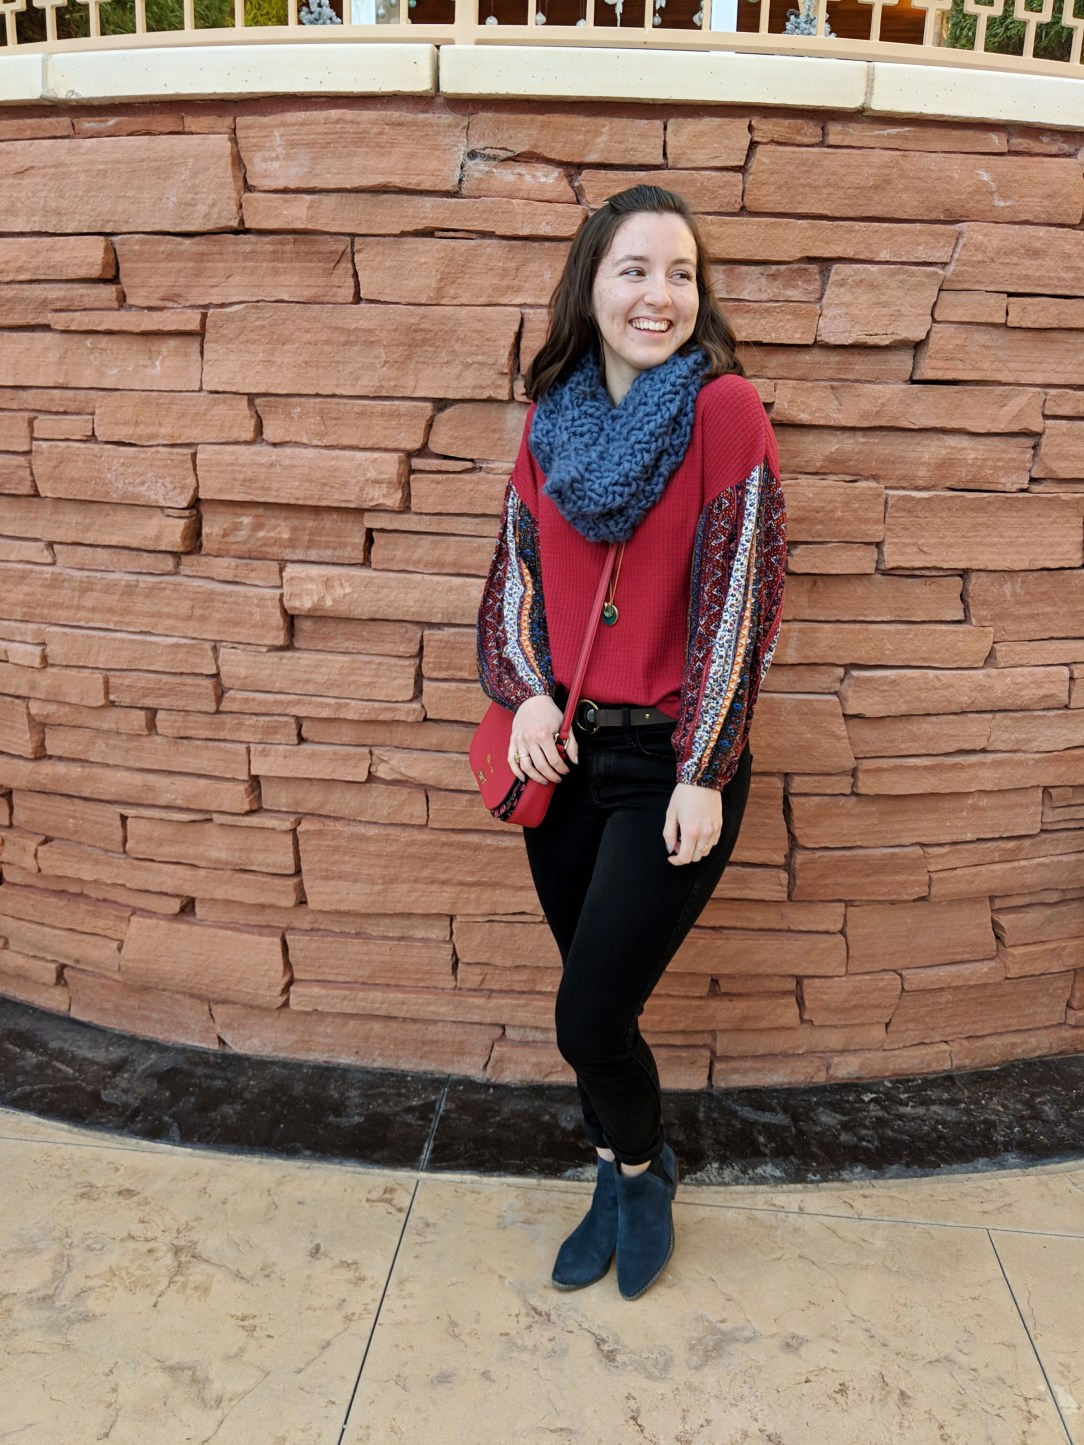 red patterned shirt with blue infinity scarf